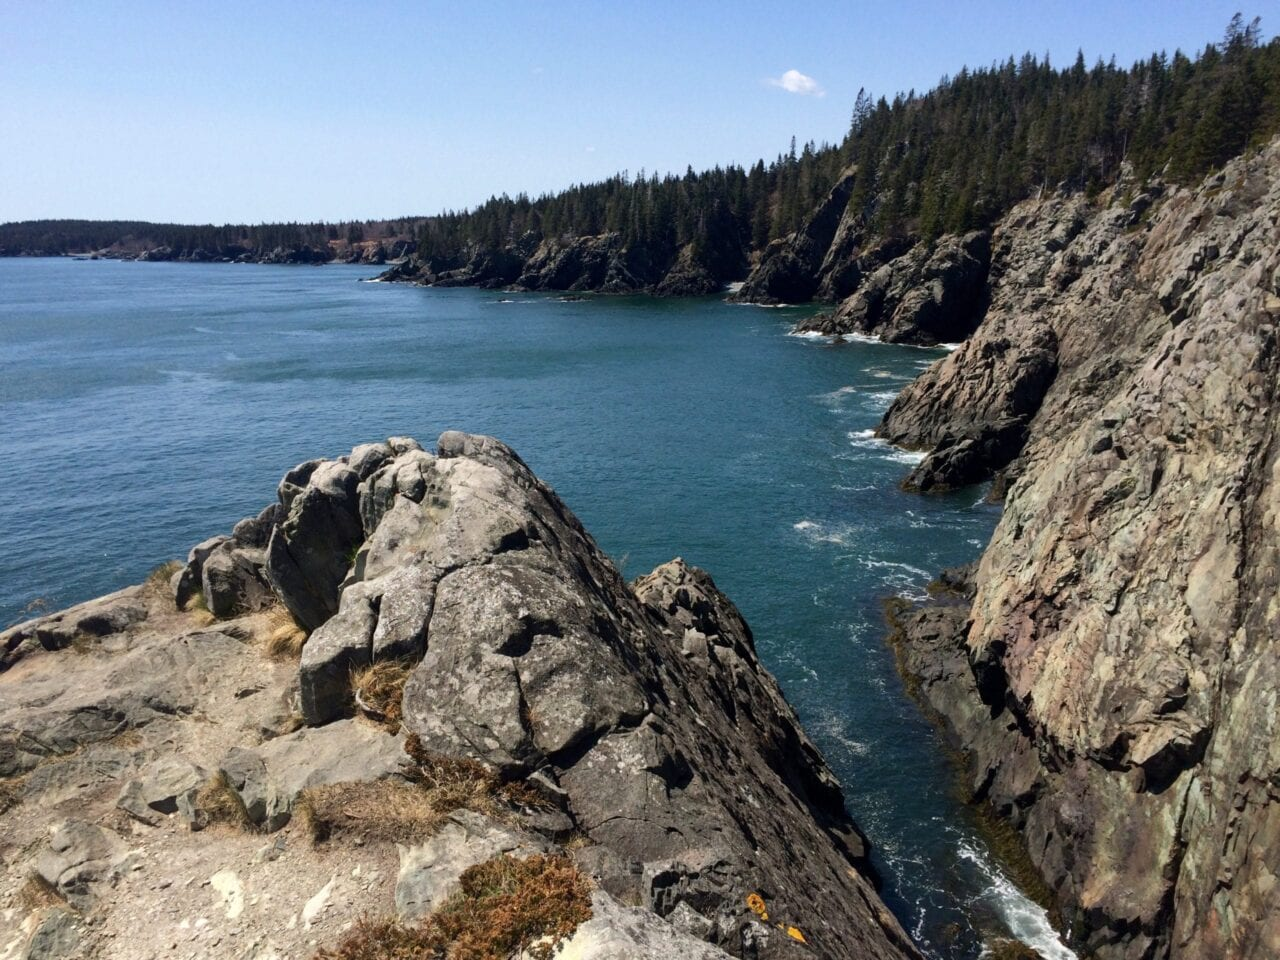 Rocky coastal cliffs give way to blue ocean water and a dense forest.